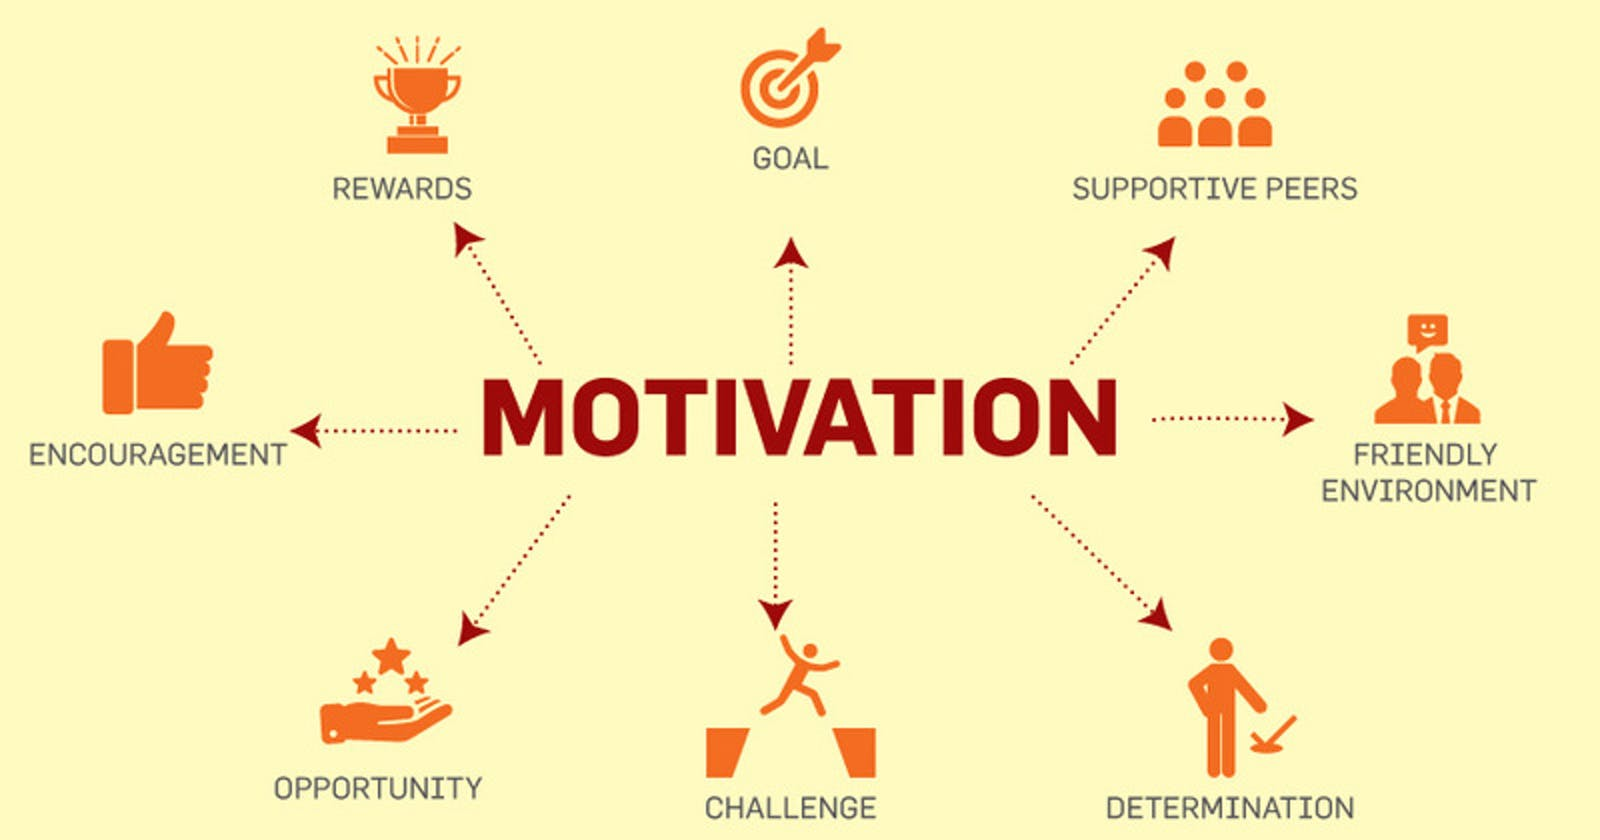 To motivate or not to demotivate?